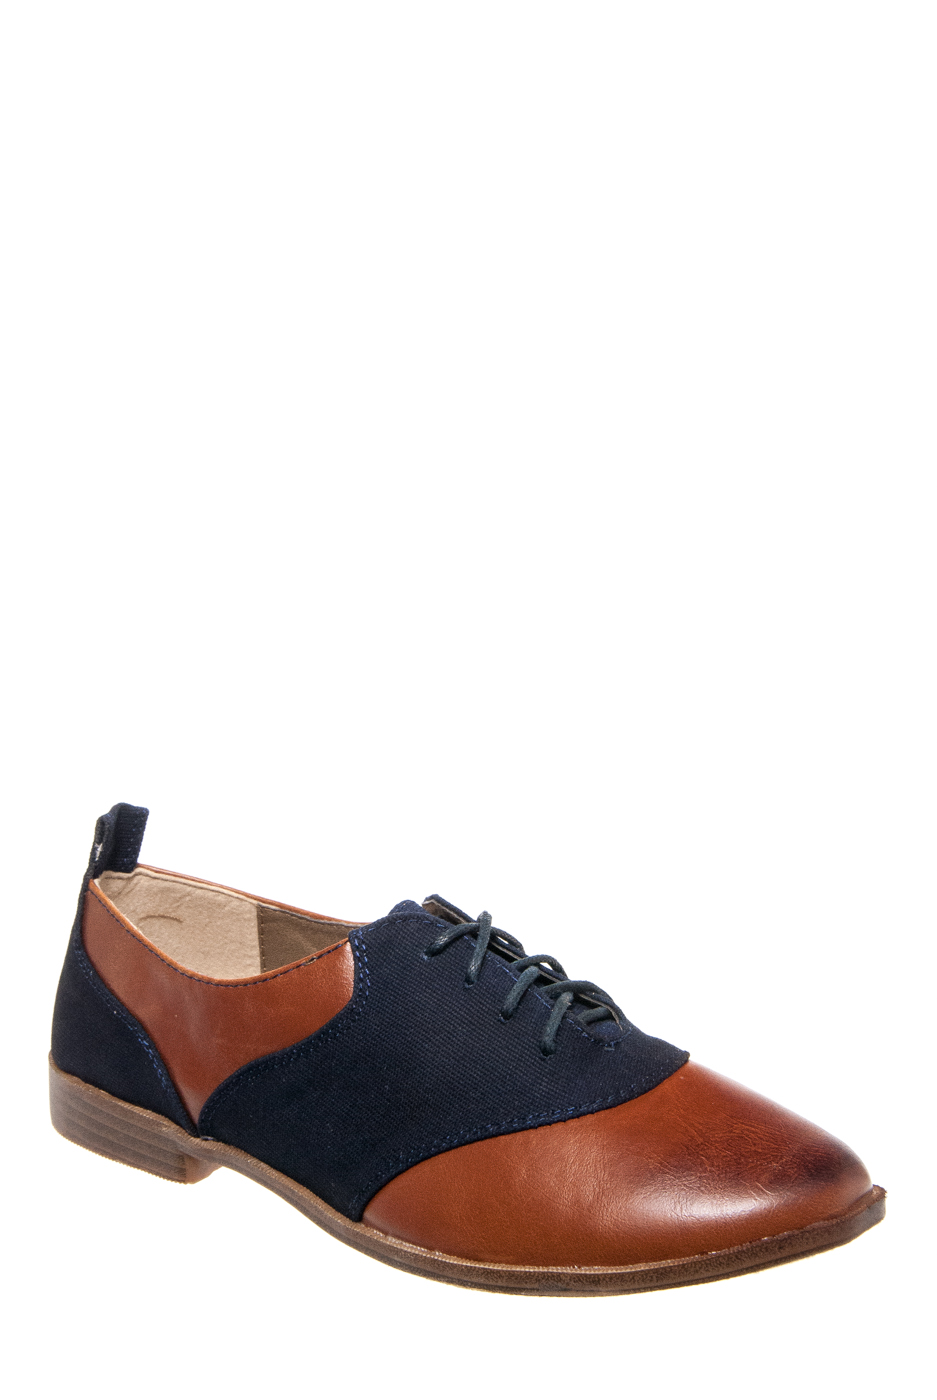 RESTRICTED Betsy Oxford Shoes